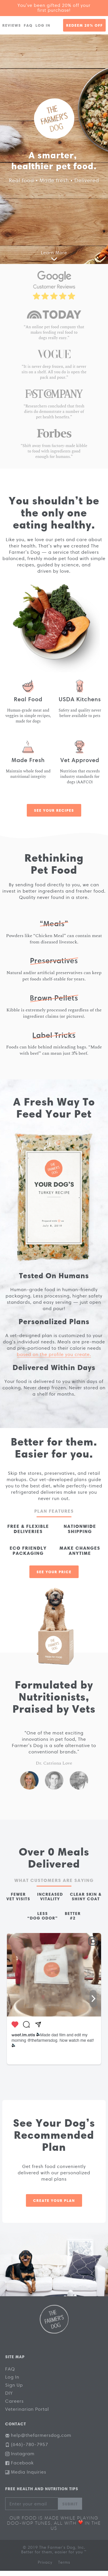 Example of Design for Pets & Animals, Animal Products & Services, Pet Food & Supplies, Mobile Landing Page by thefarmersdog.com | Mobile Landing Page Design